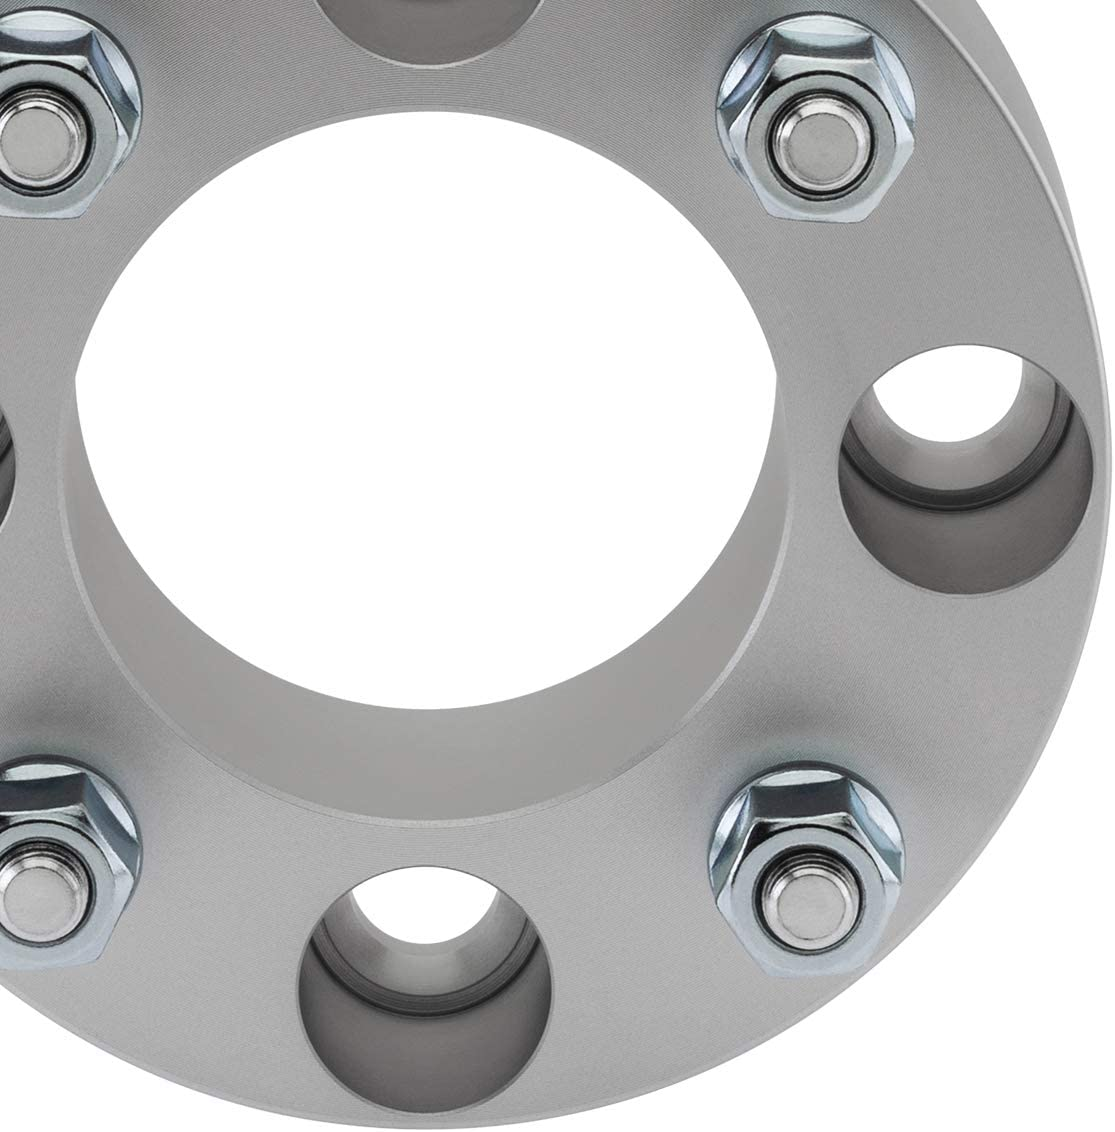 Silver 650 and Rhino 450 Supreme Suspensions 4pc Set of 1.5 Wheel Spacers for Yamaha Kodiak 400 700 660 4x110mm Bolt Pattern M10x1.25 Studs /& 74.1mm Center Bore ATV Wheel Spacer